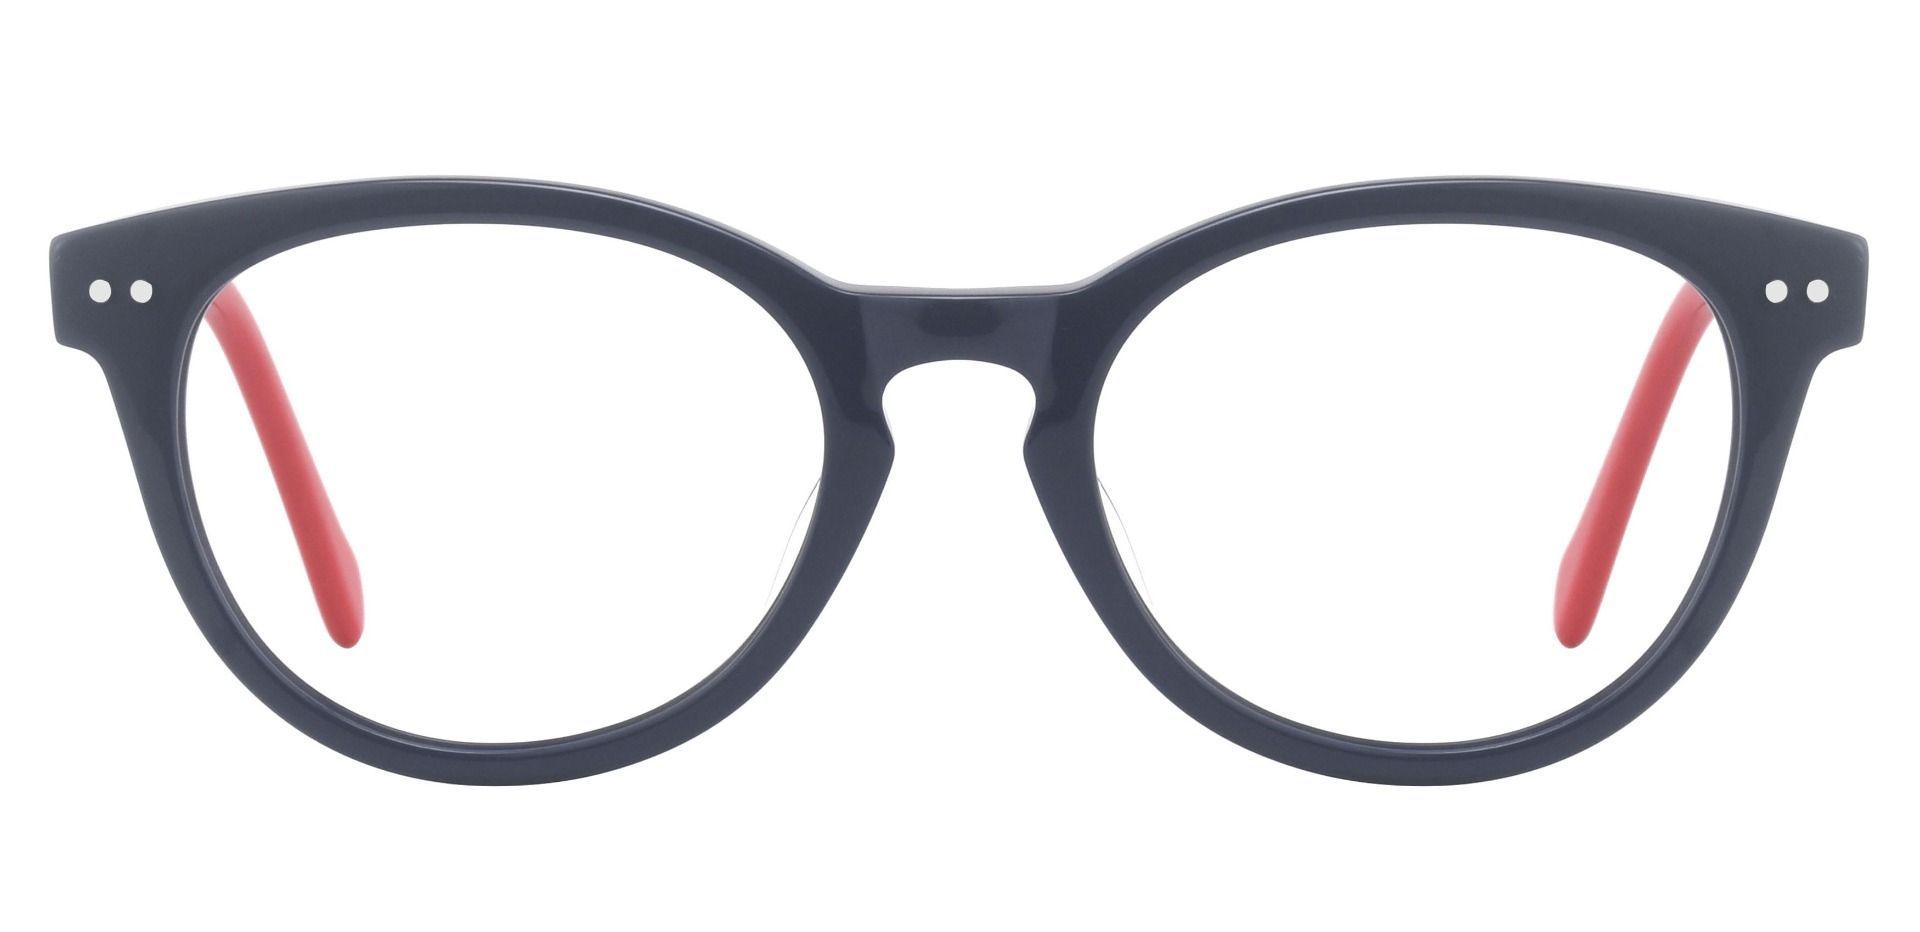 Common Oval Eyeglasses Frame - The Frame Is Blue And Red